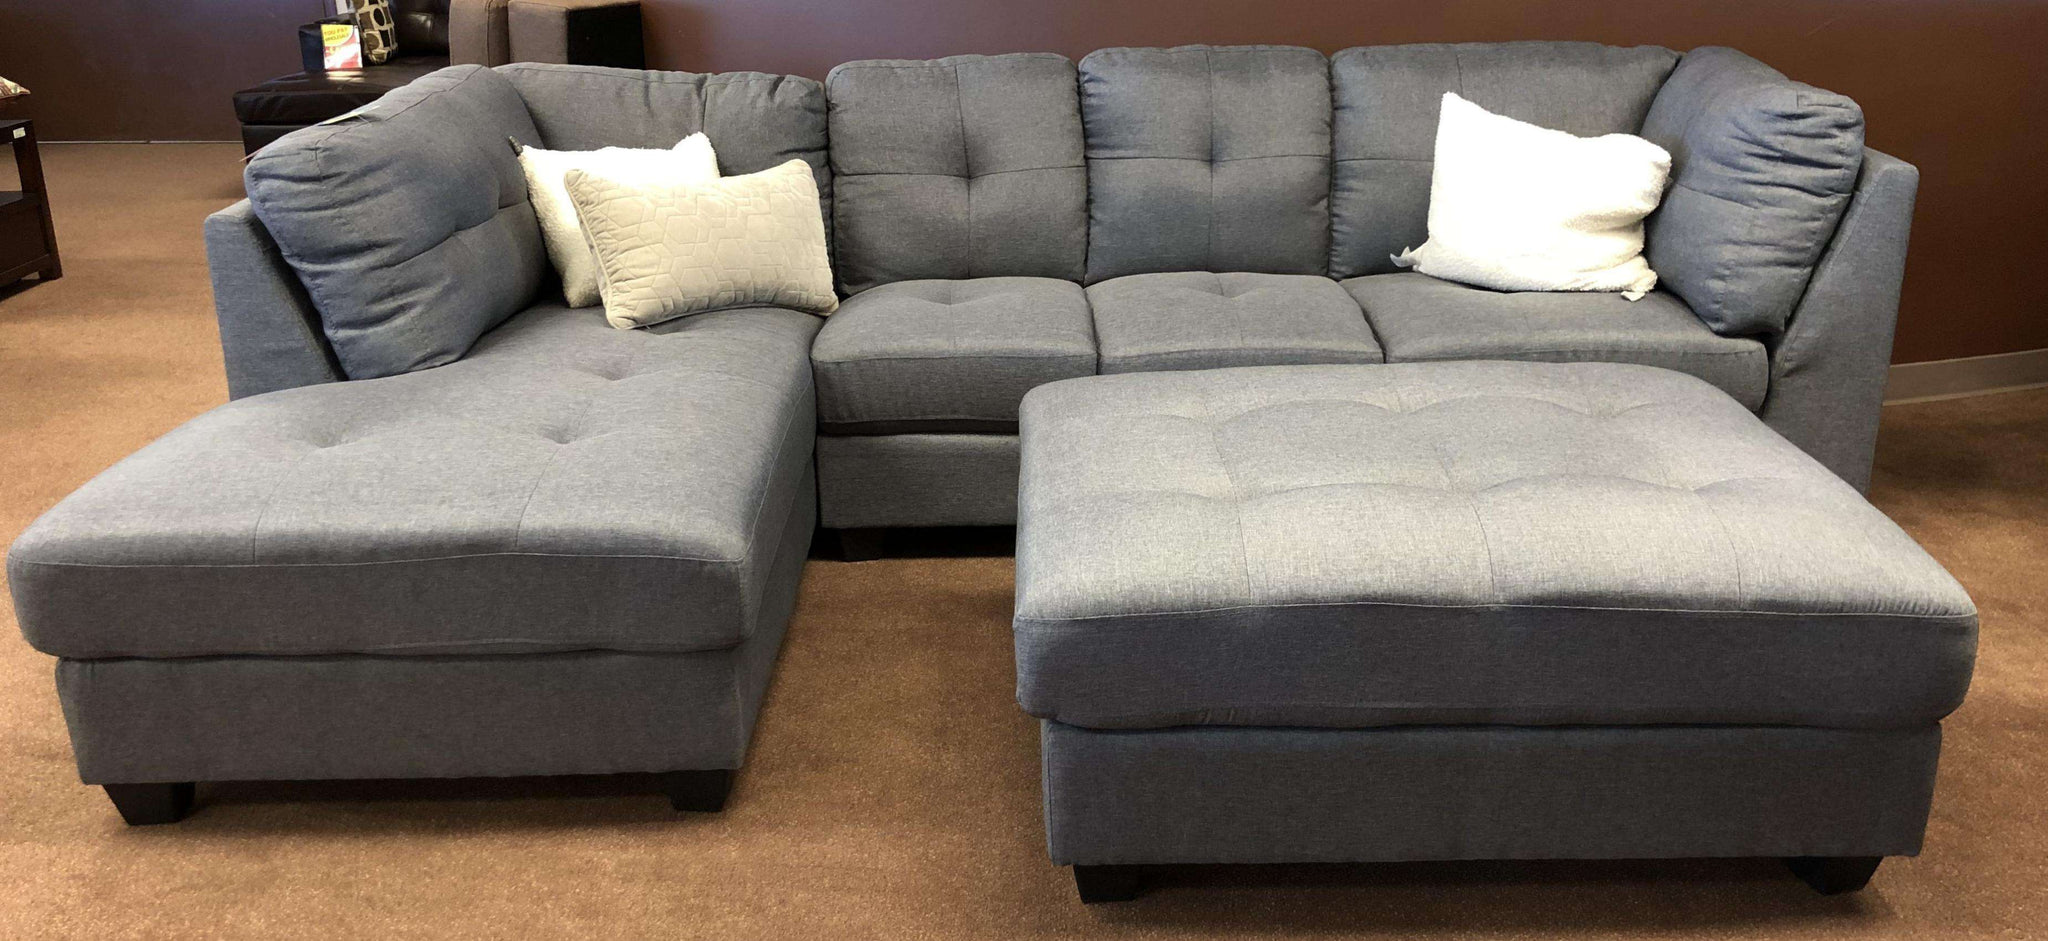 Lilly Fabric Sectional with Ottoman - Richicollection Furniture Warehouse